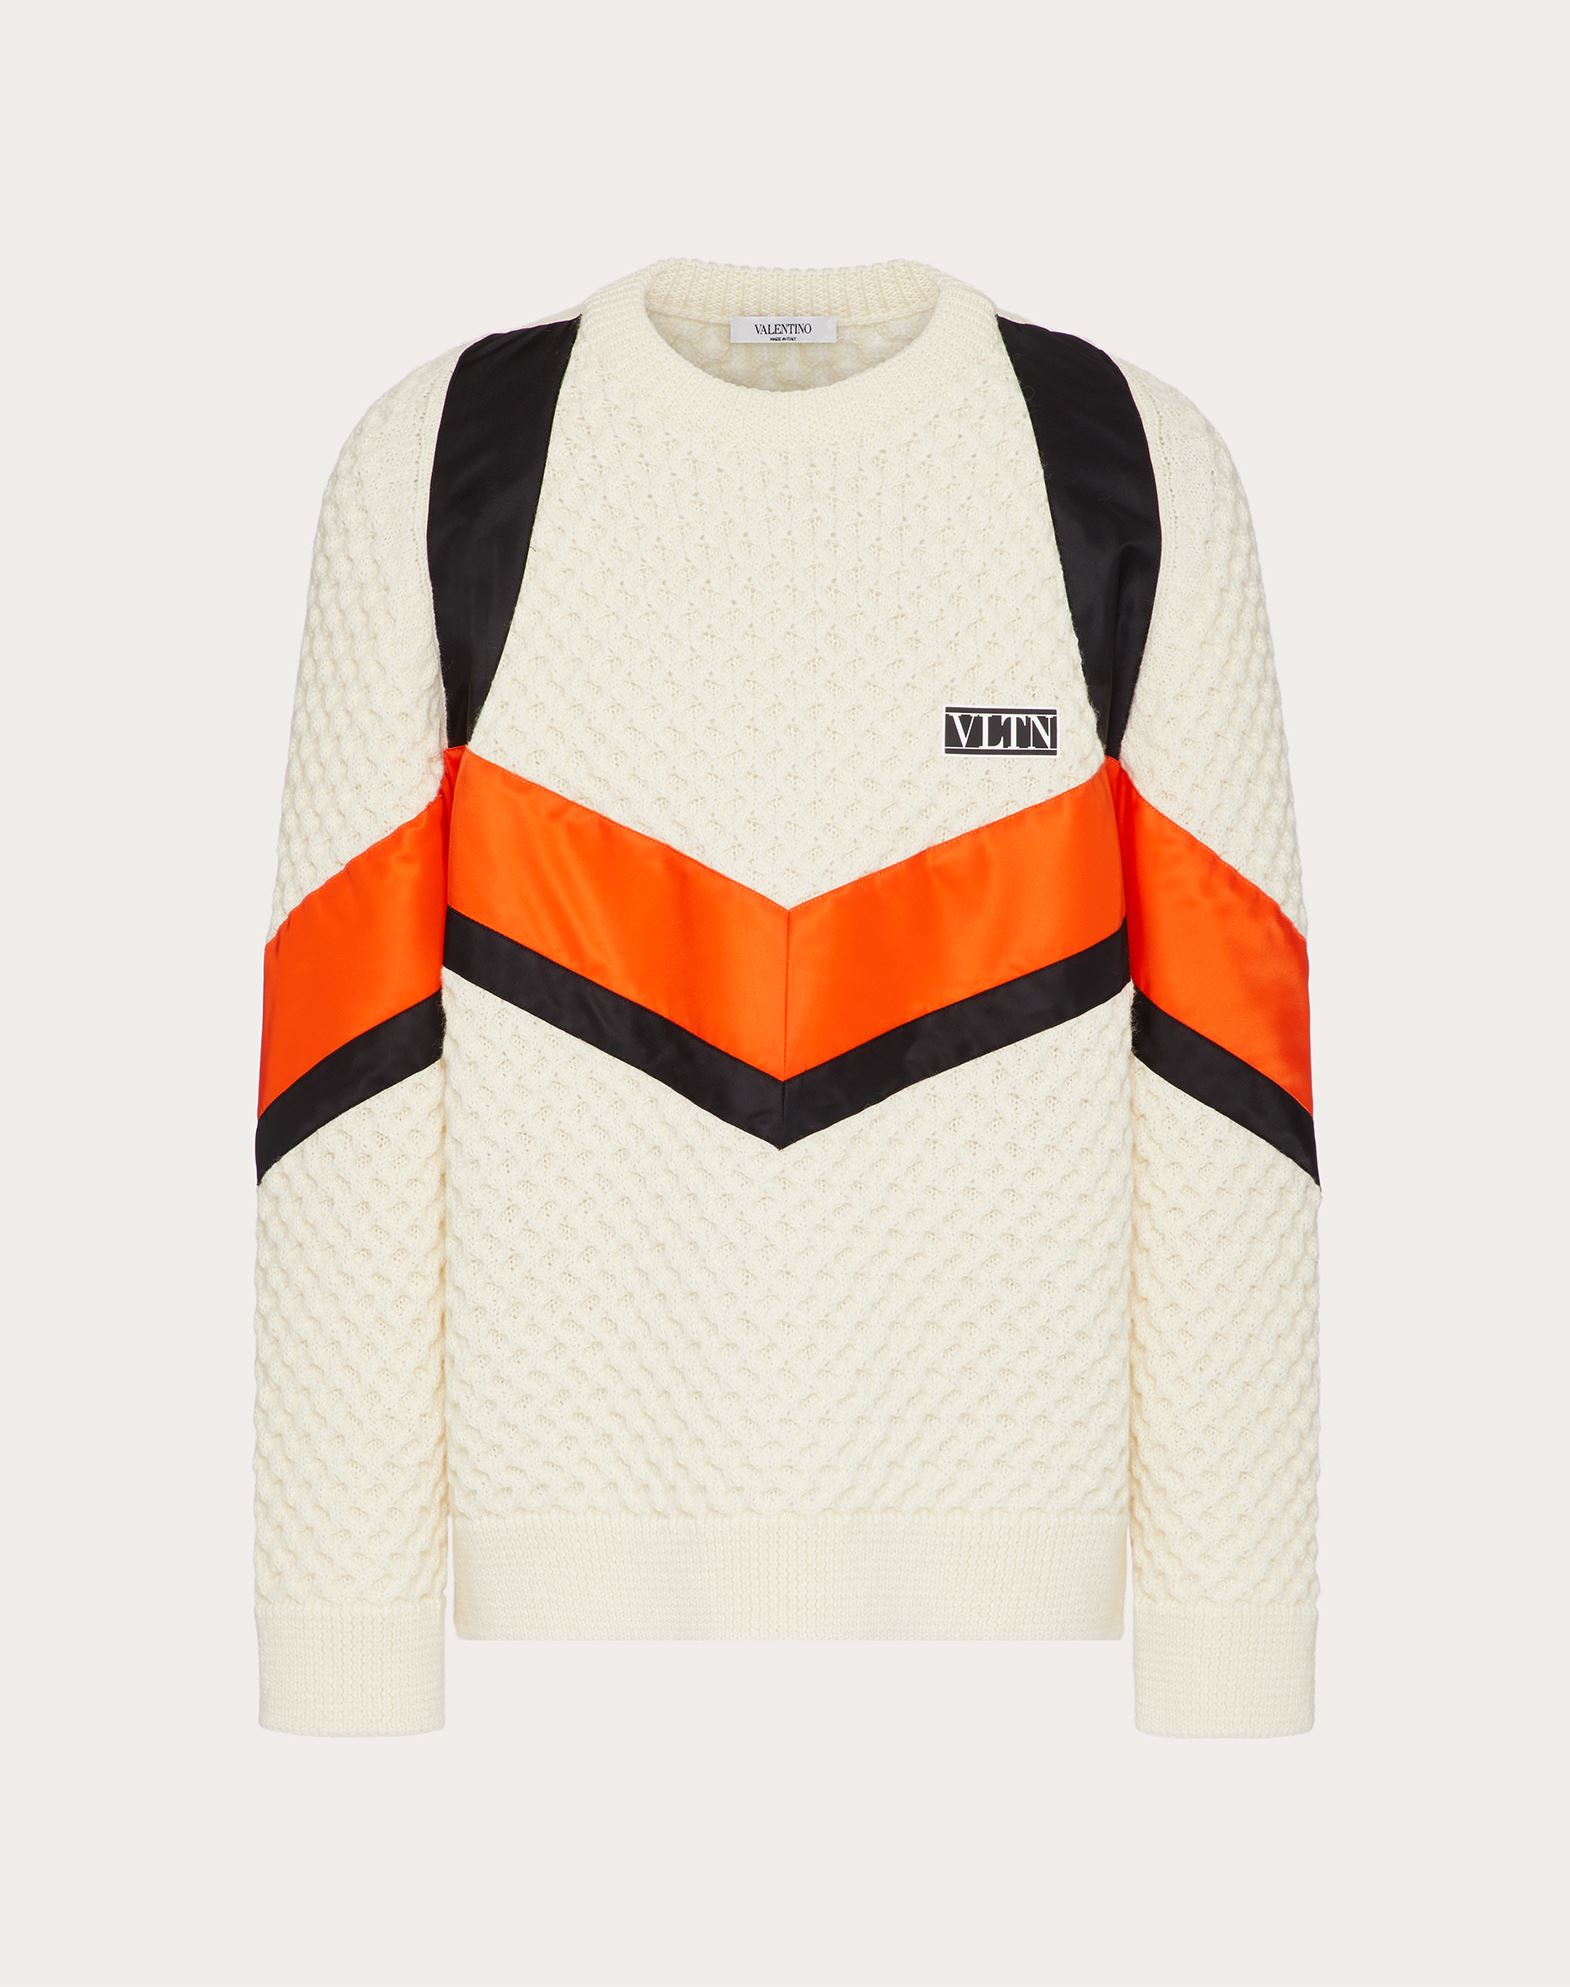 Valentino Uomo Crewneck Wool Sweater With Vltn Tag Color Block In Ivory/multicolor